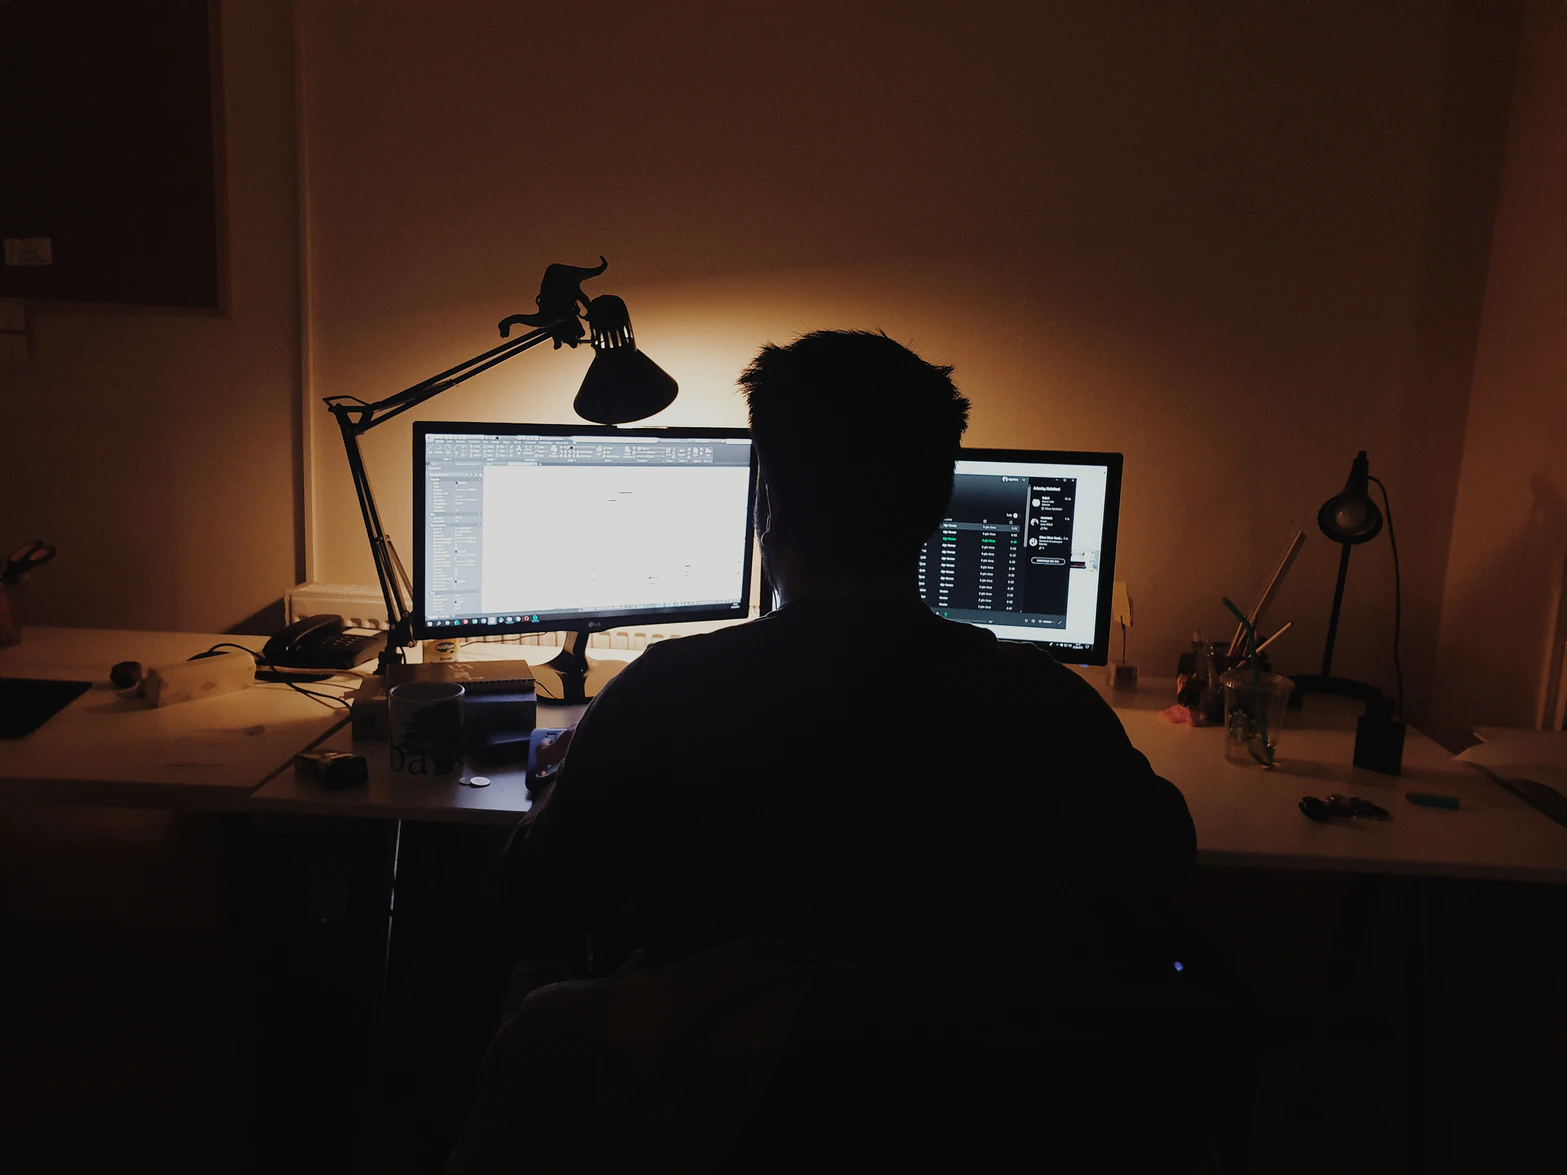 An image of a man sitting alone in a dark room, facing two computer screens.